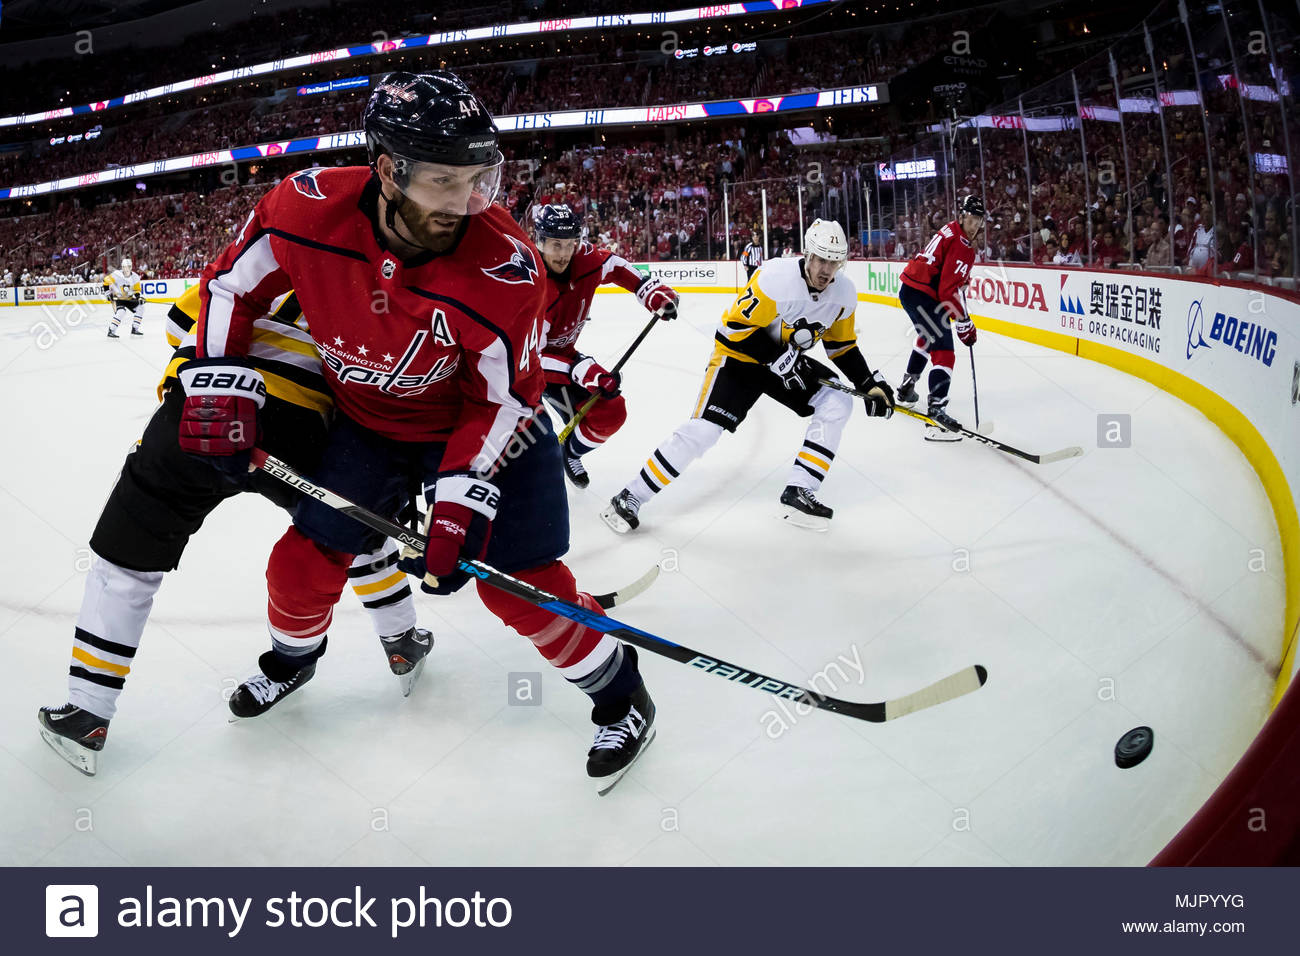 Washington Capitals defenseman Brooks Orpik (44) battles for the puck  during the third period of the playoff game between the Pittsburgh Penguins  and the ... 4f4cb872d4f